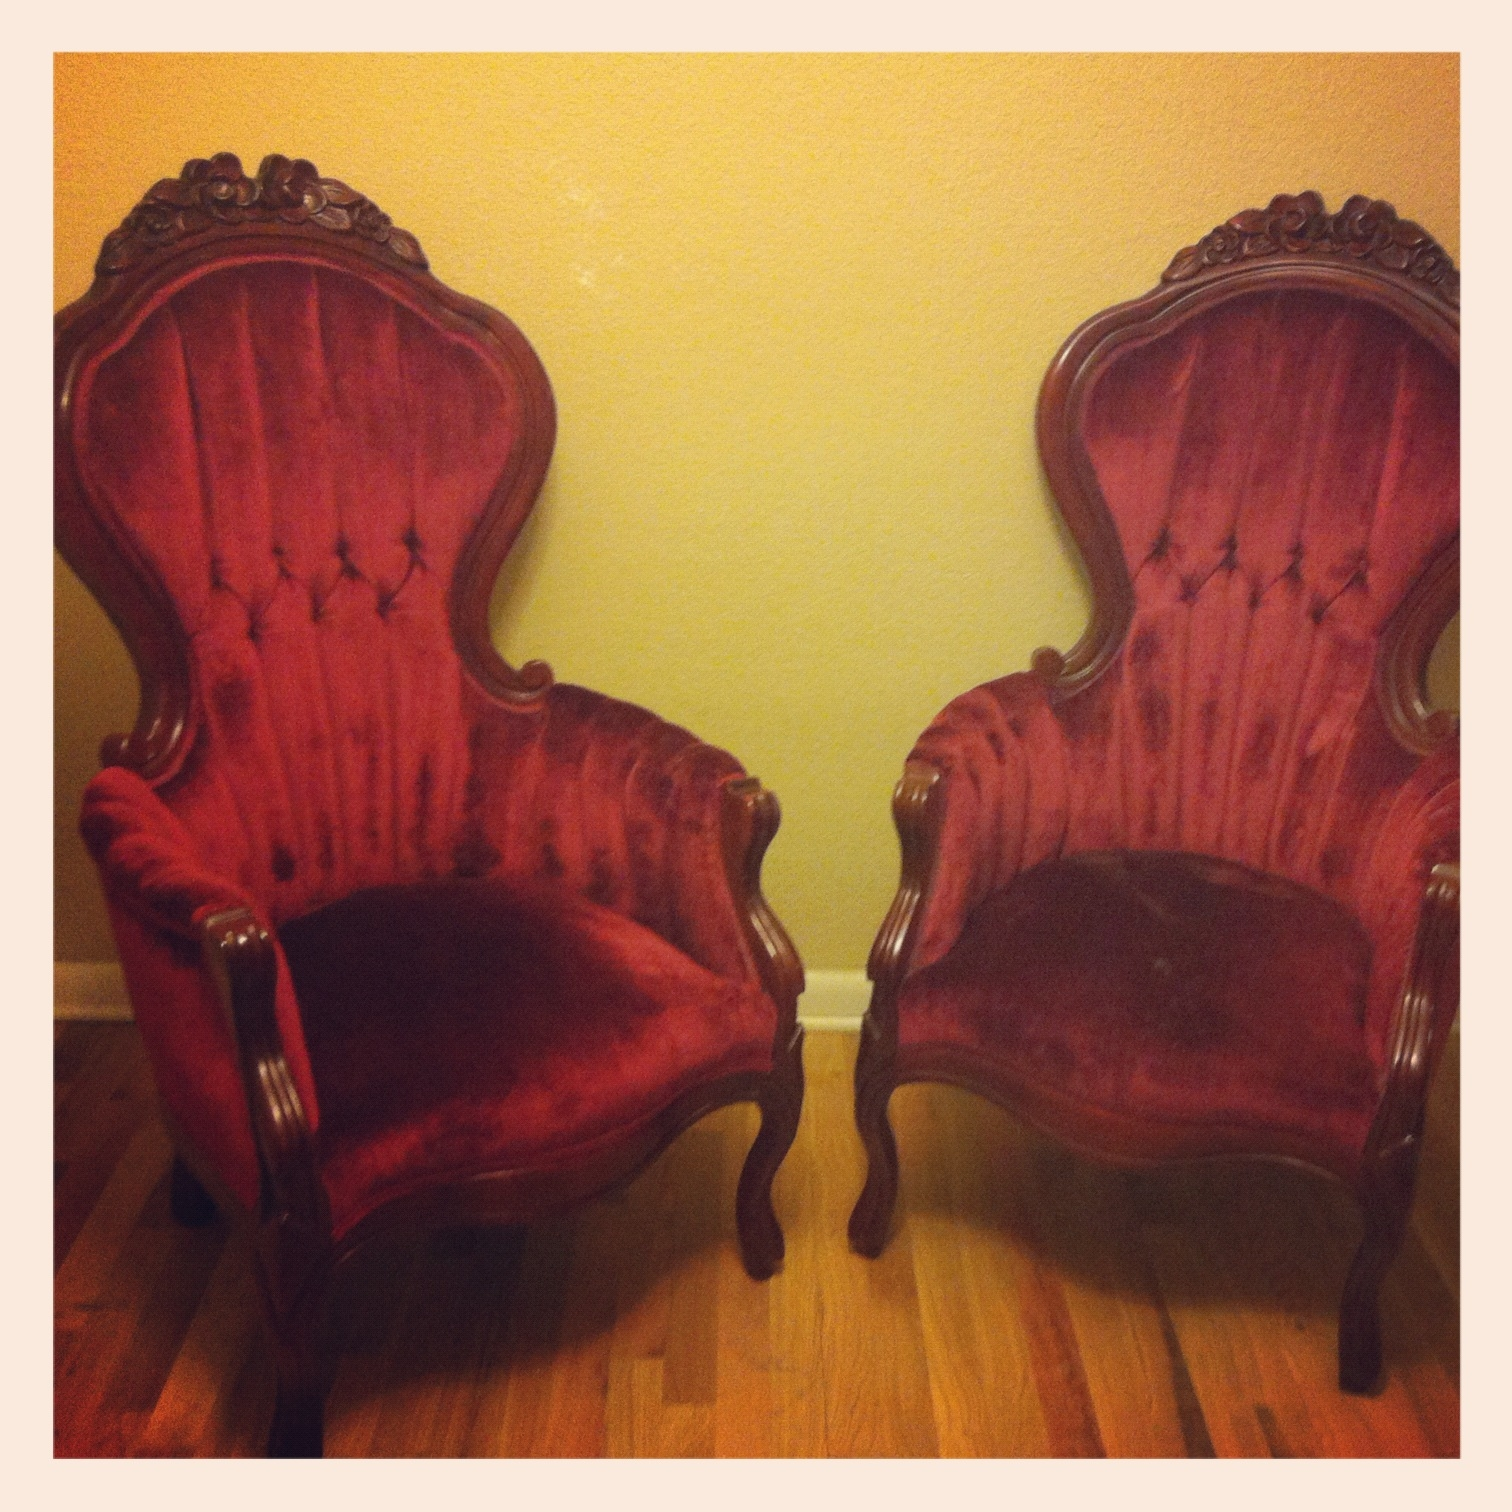 Antique Red Tufted Sette With Chairs Chairs With Character - Antique  Sitting Chairs Antique Furniture - - Antique Sitting Chairs Antique Furniture